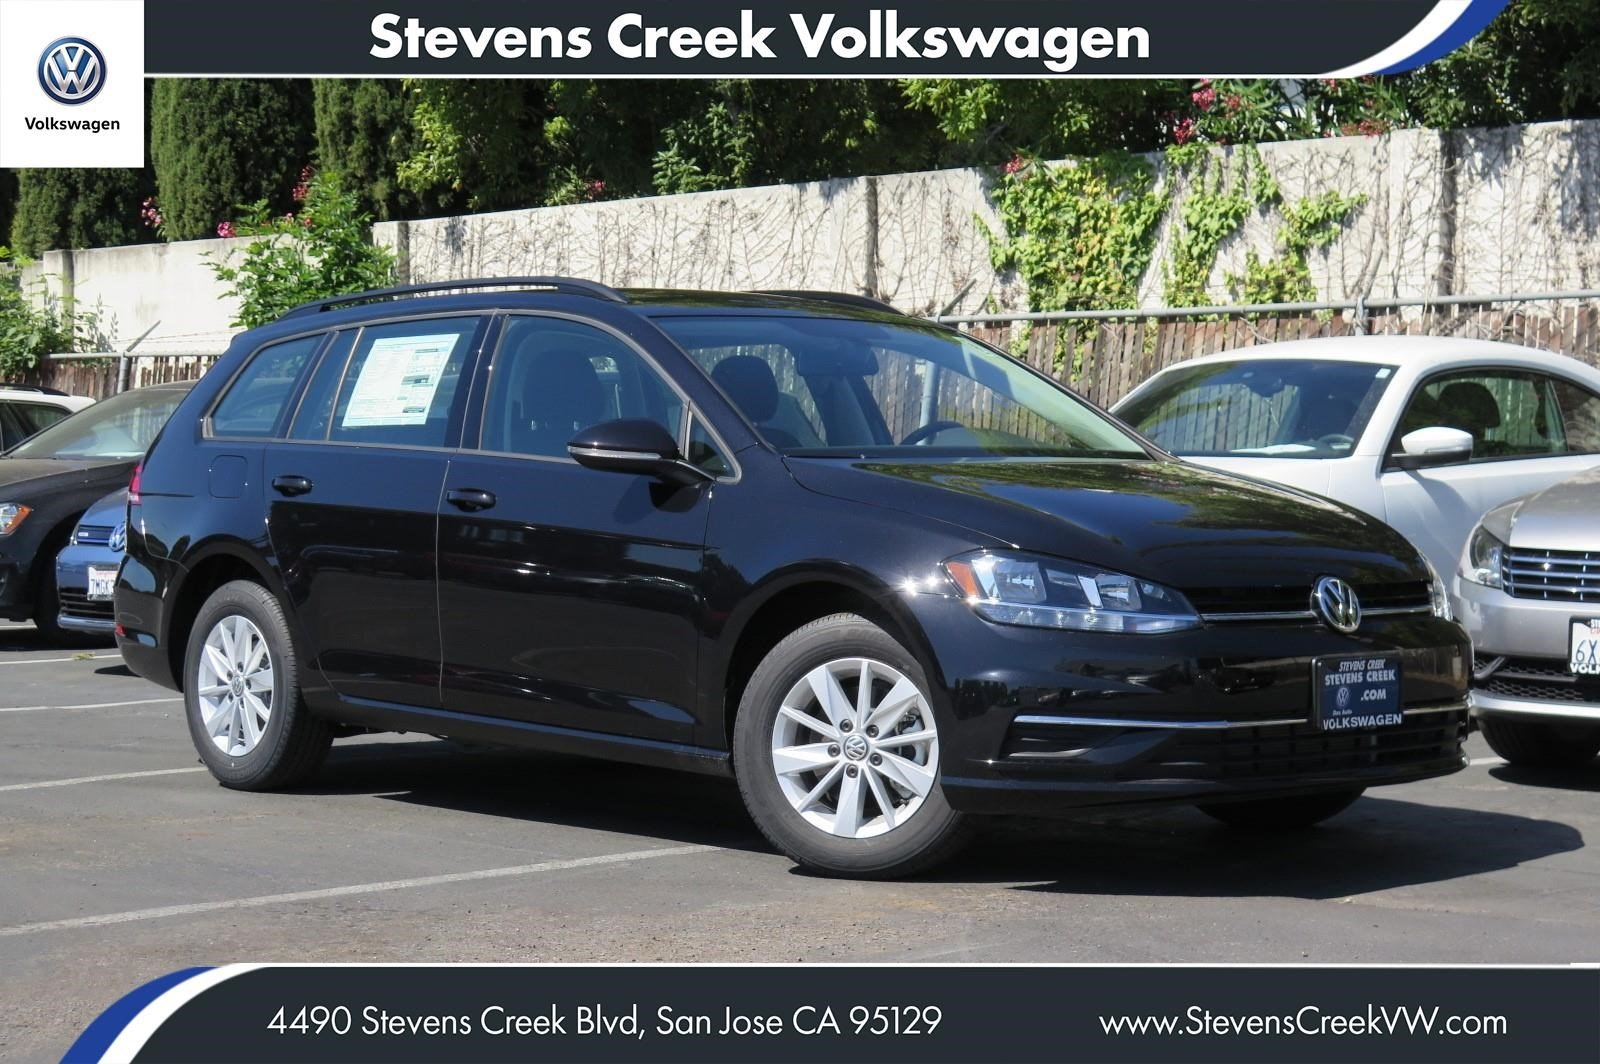 New 2018 Volkswagen Golf SportWagen S FWD Station Wagon VIN# JM756711 MSRP $23,990